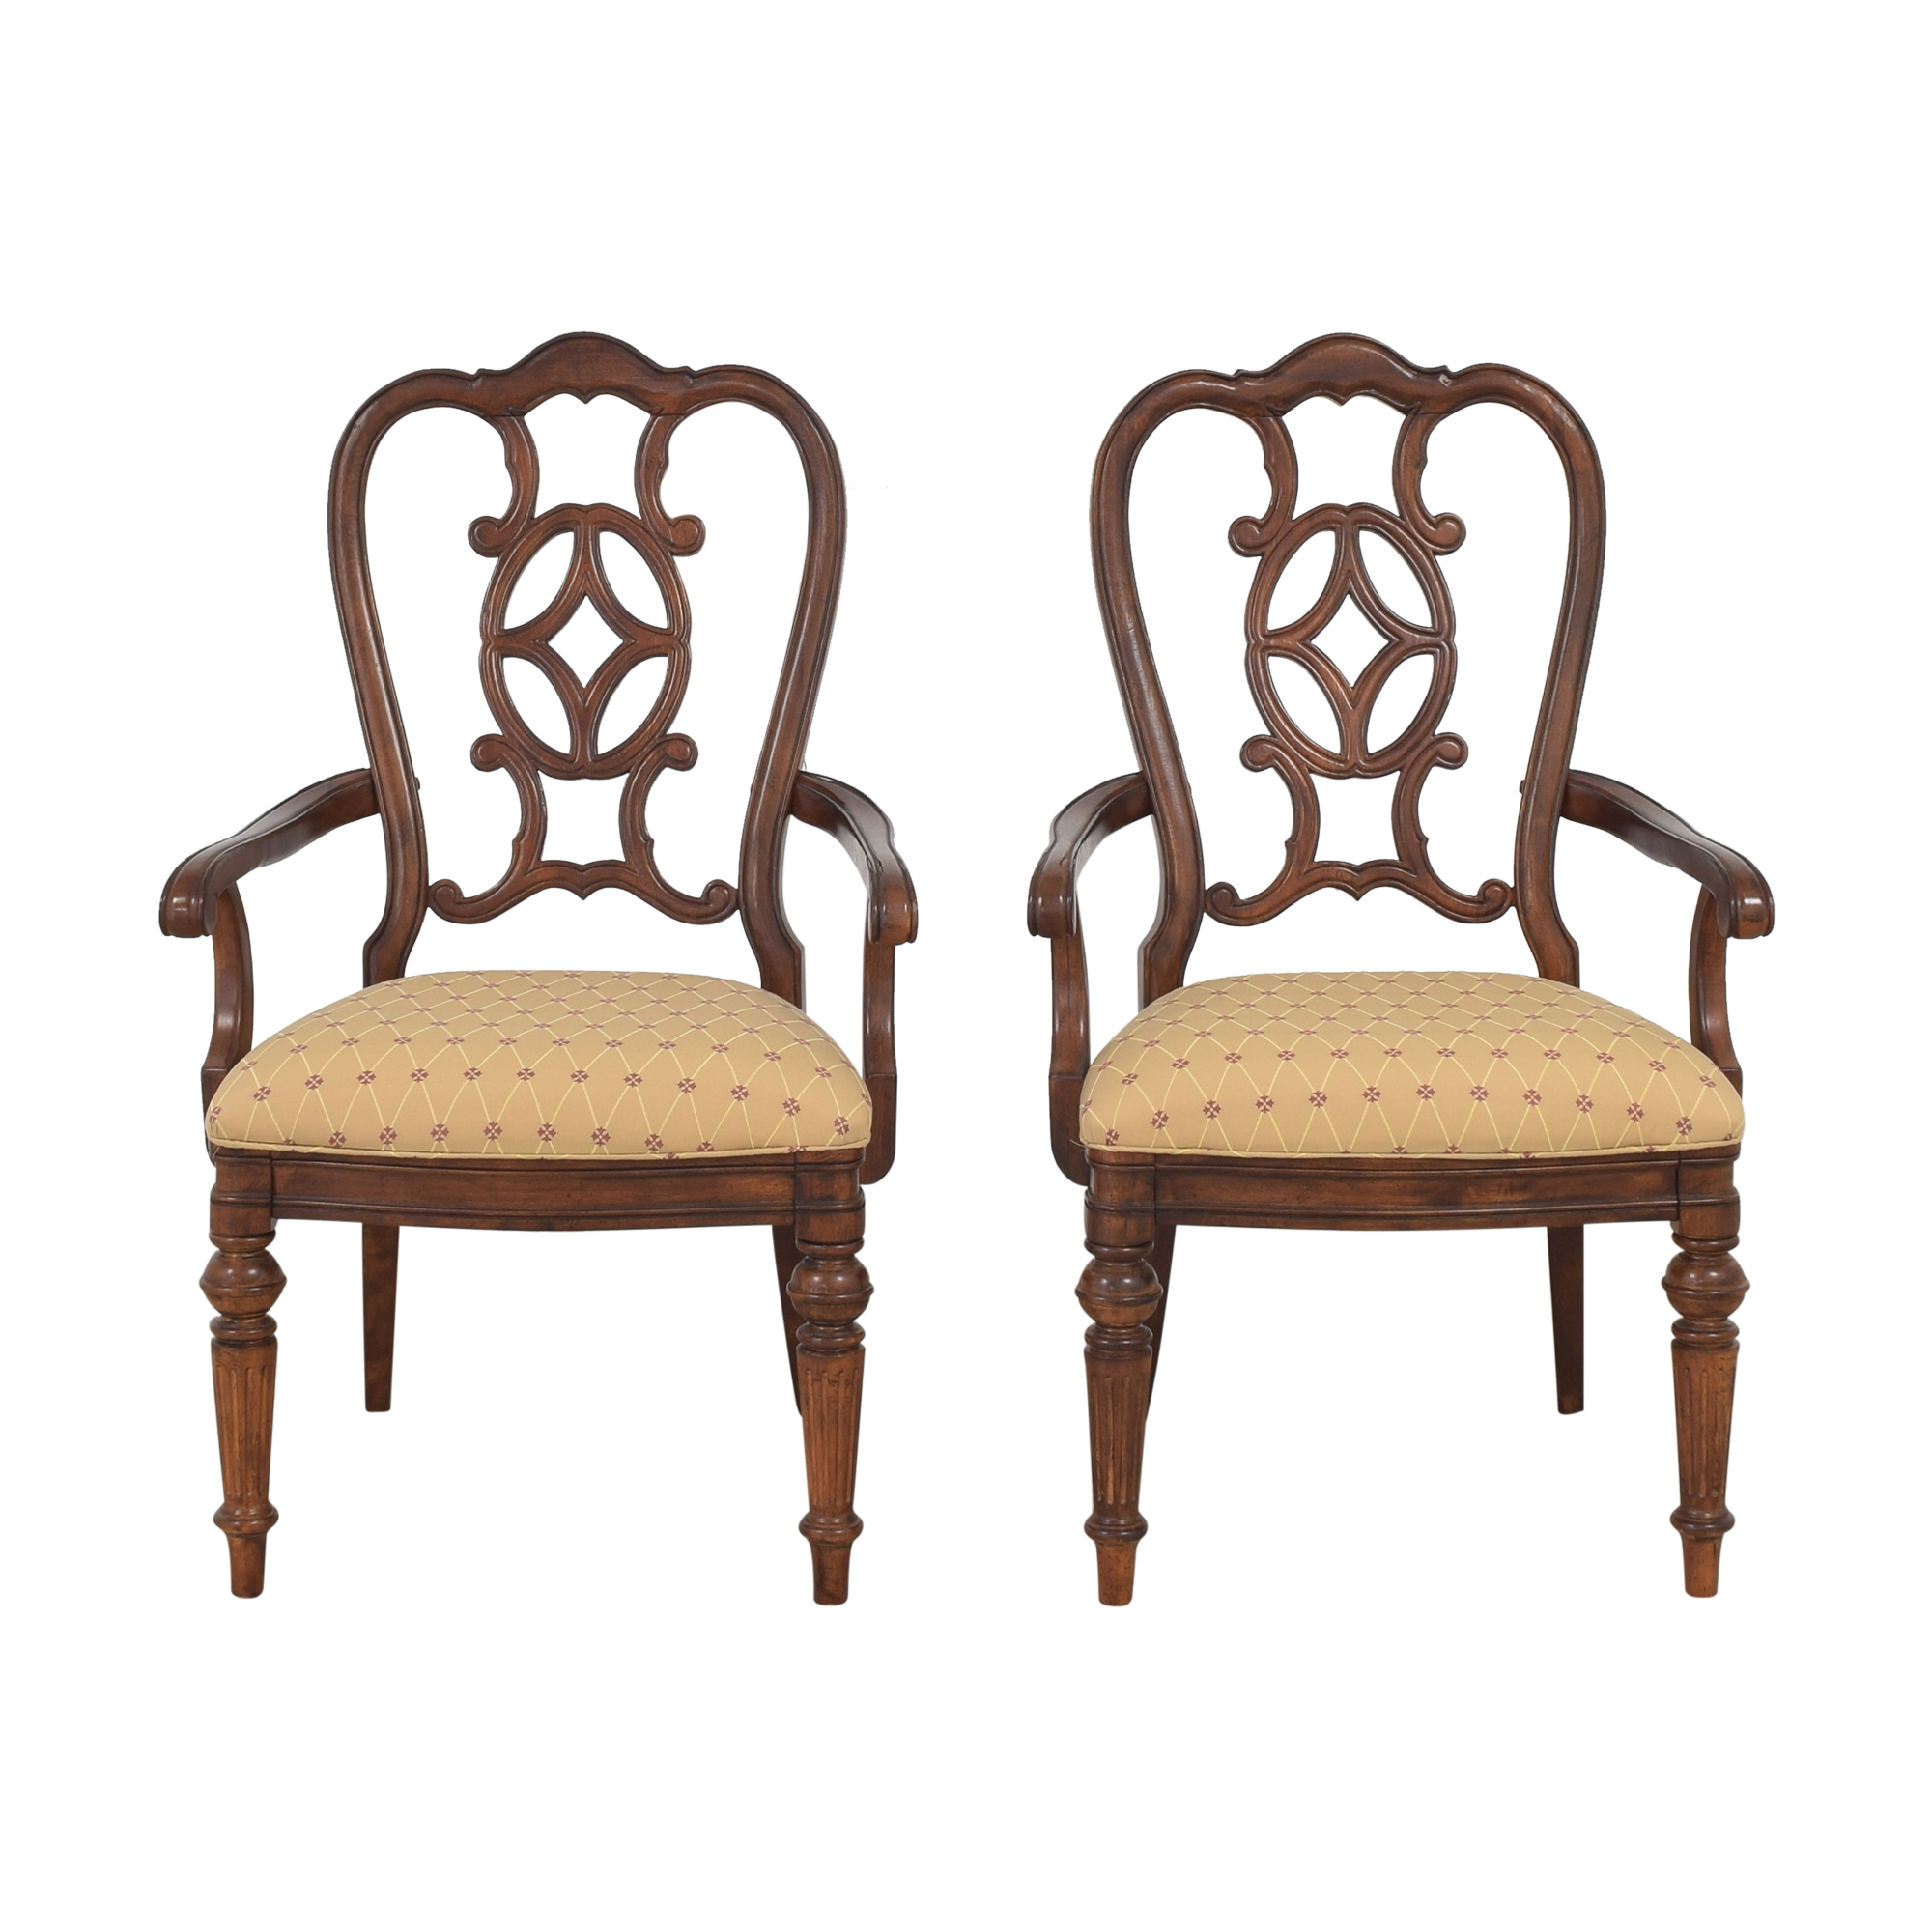 shop Thomasville Thomasville Dining Arm Chairs online